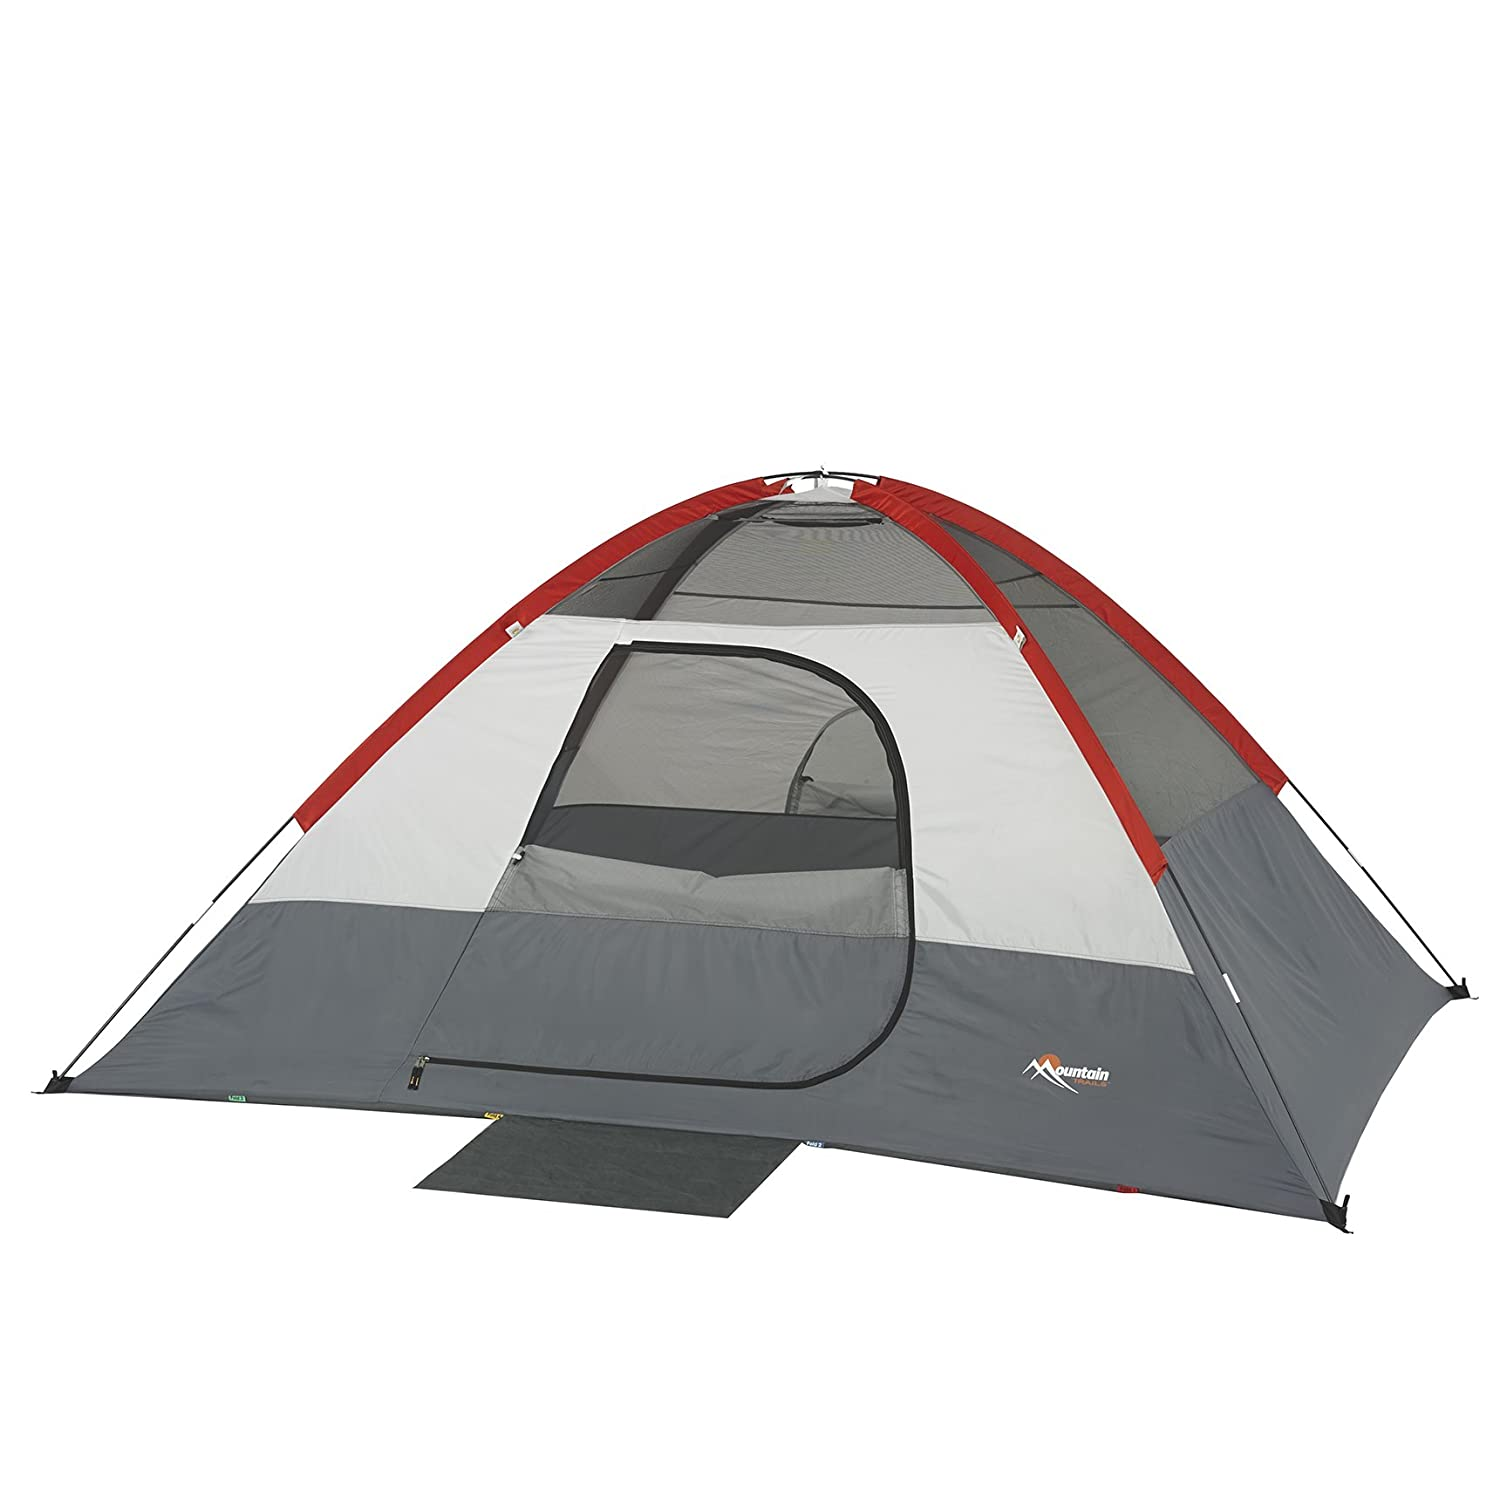 Amazon.com  Mountain Trails South Bend Tent - 4 Person  Backpacking Tents  Sports u0026 Outdoors  sc 1 st  Amazon.com & Amazon.com : Mountain Trails South Bend Tent - 4 Person ...